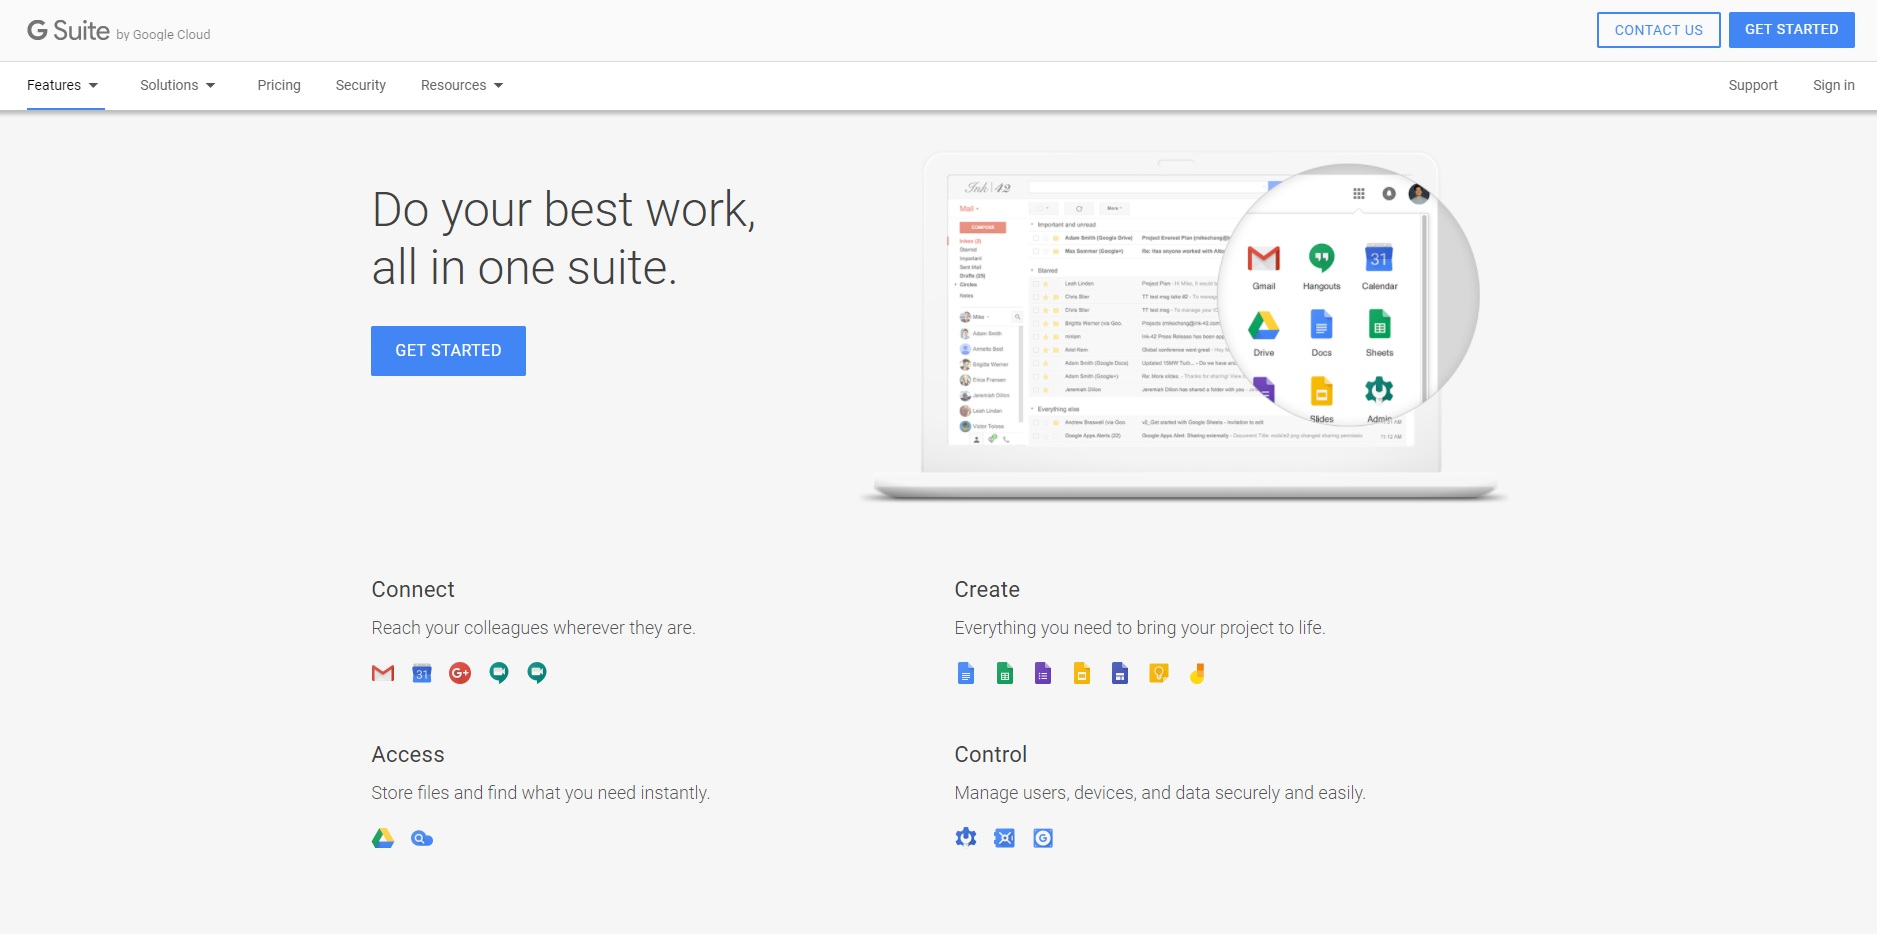 g_suite_screenshot